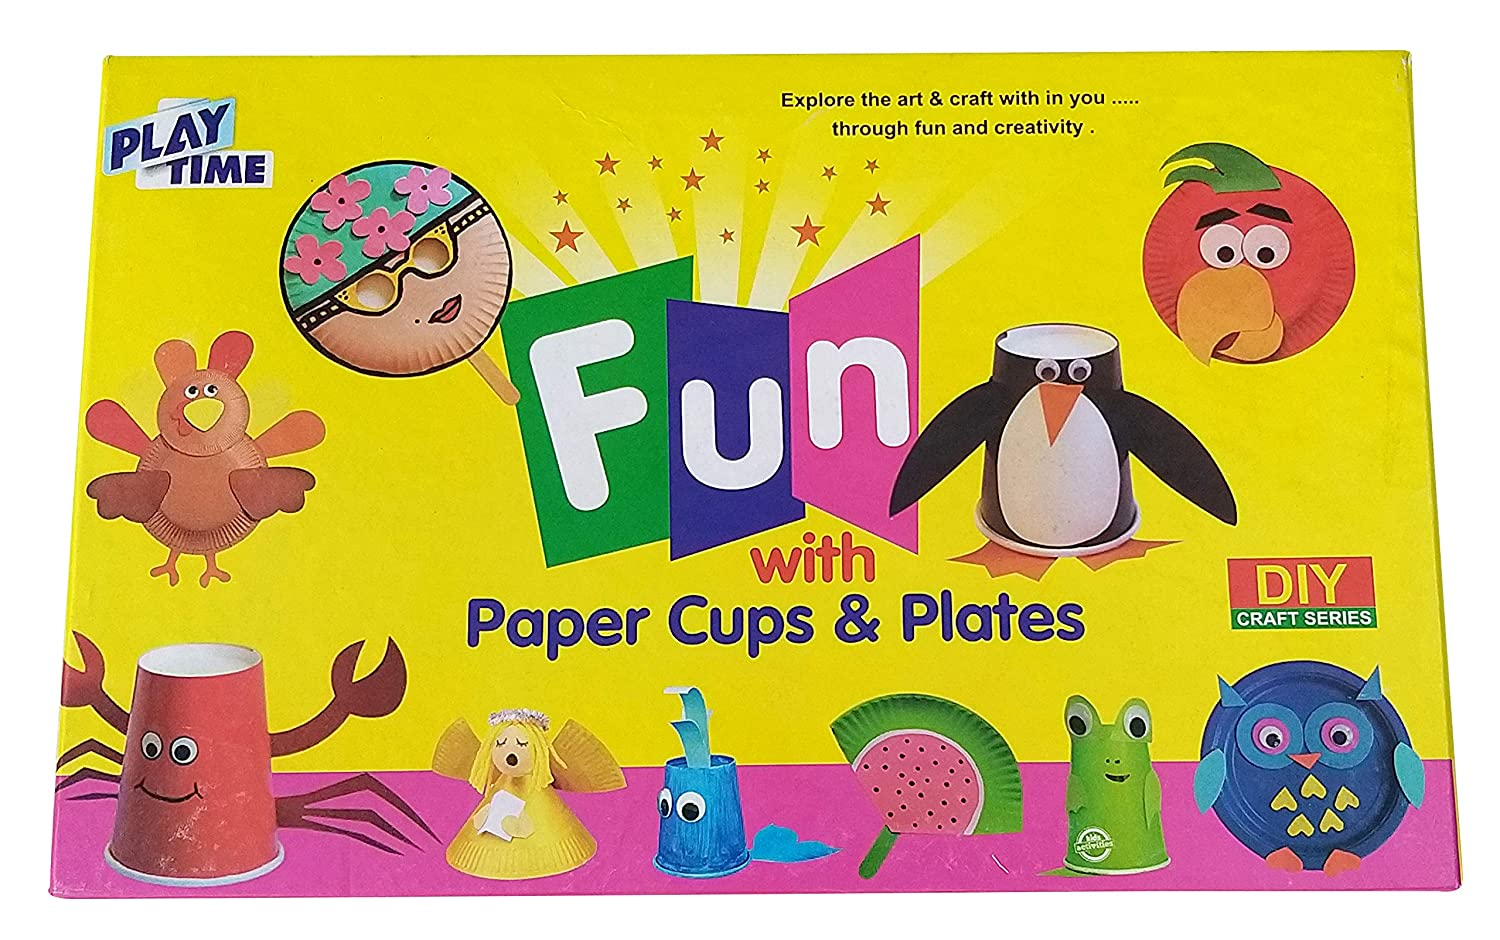 Prospo Fun with Paper Cup and Plates Game, Creative Game for Kids, Board Game for Kids, Ideal Birthday Gift